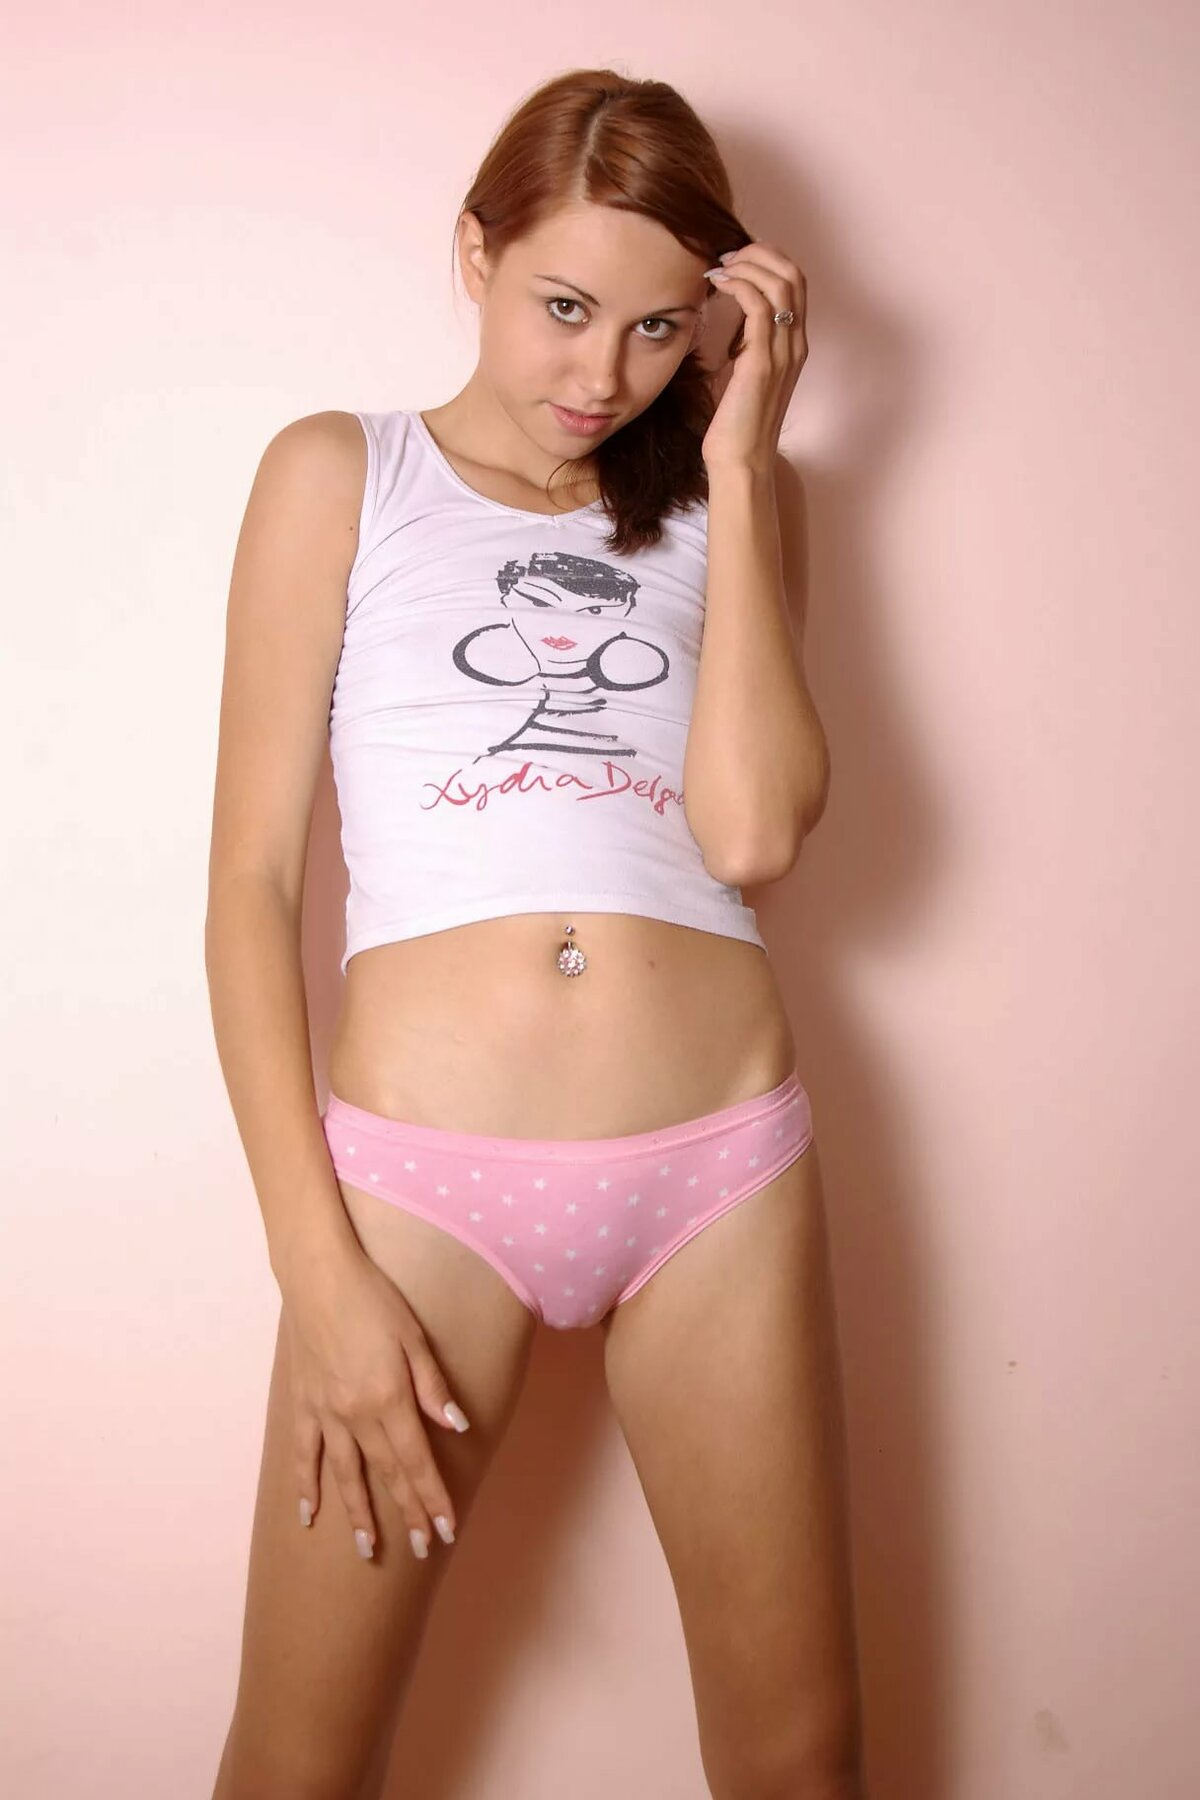 young-teen-weird-objects-in-pussy-good-sex-naked-pussy